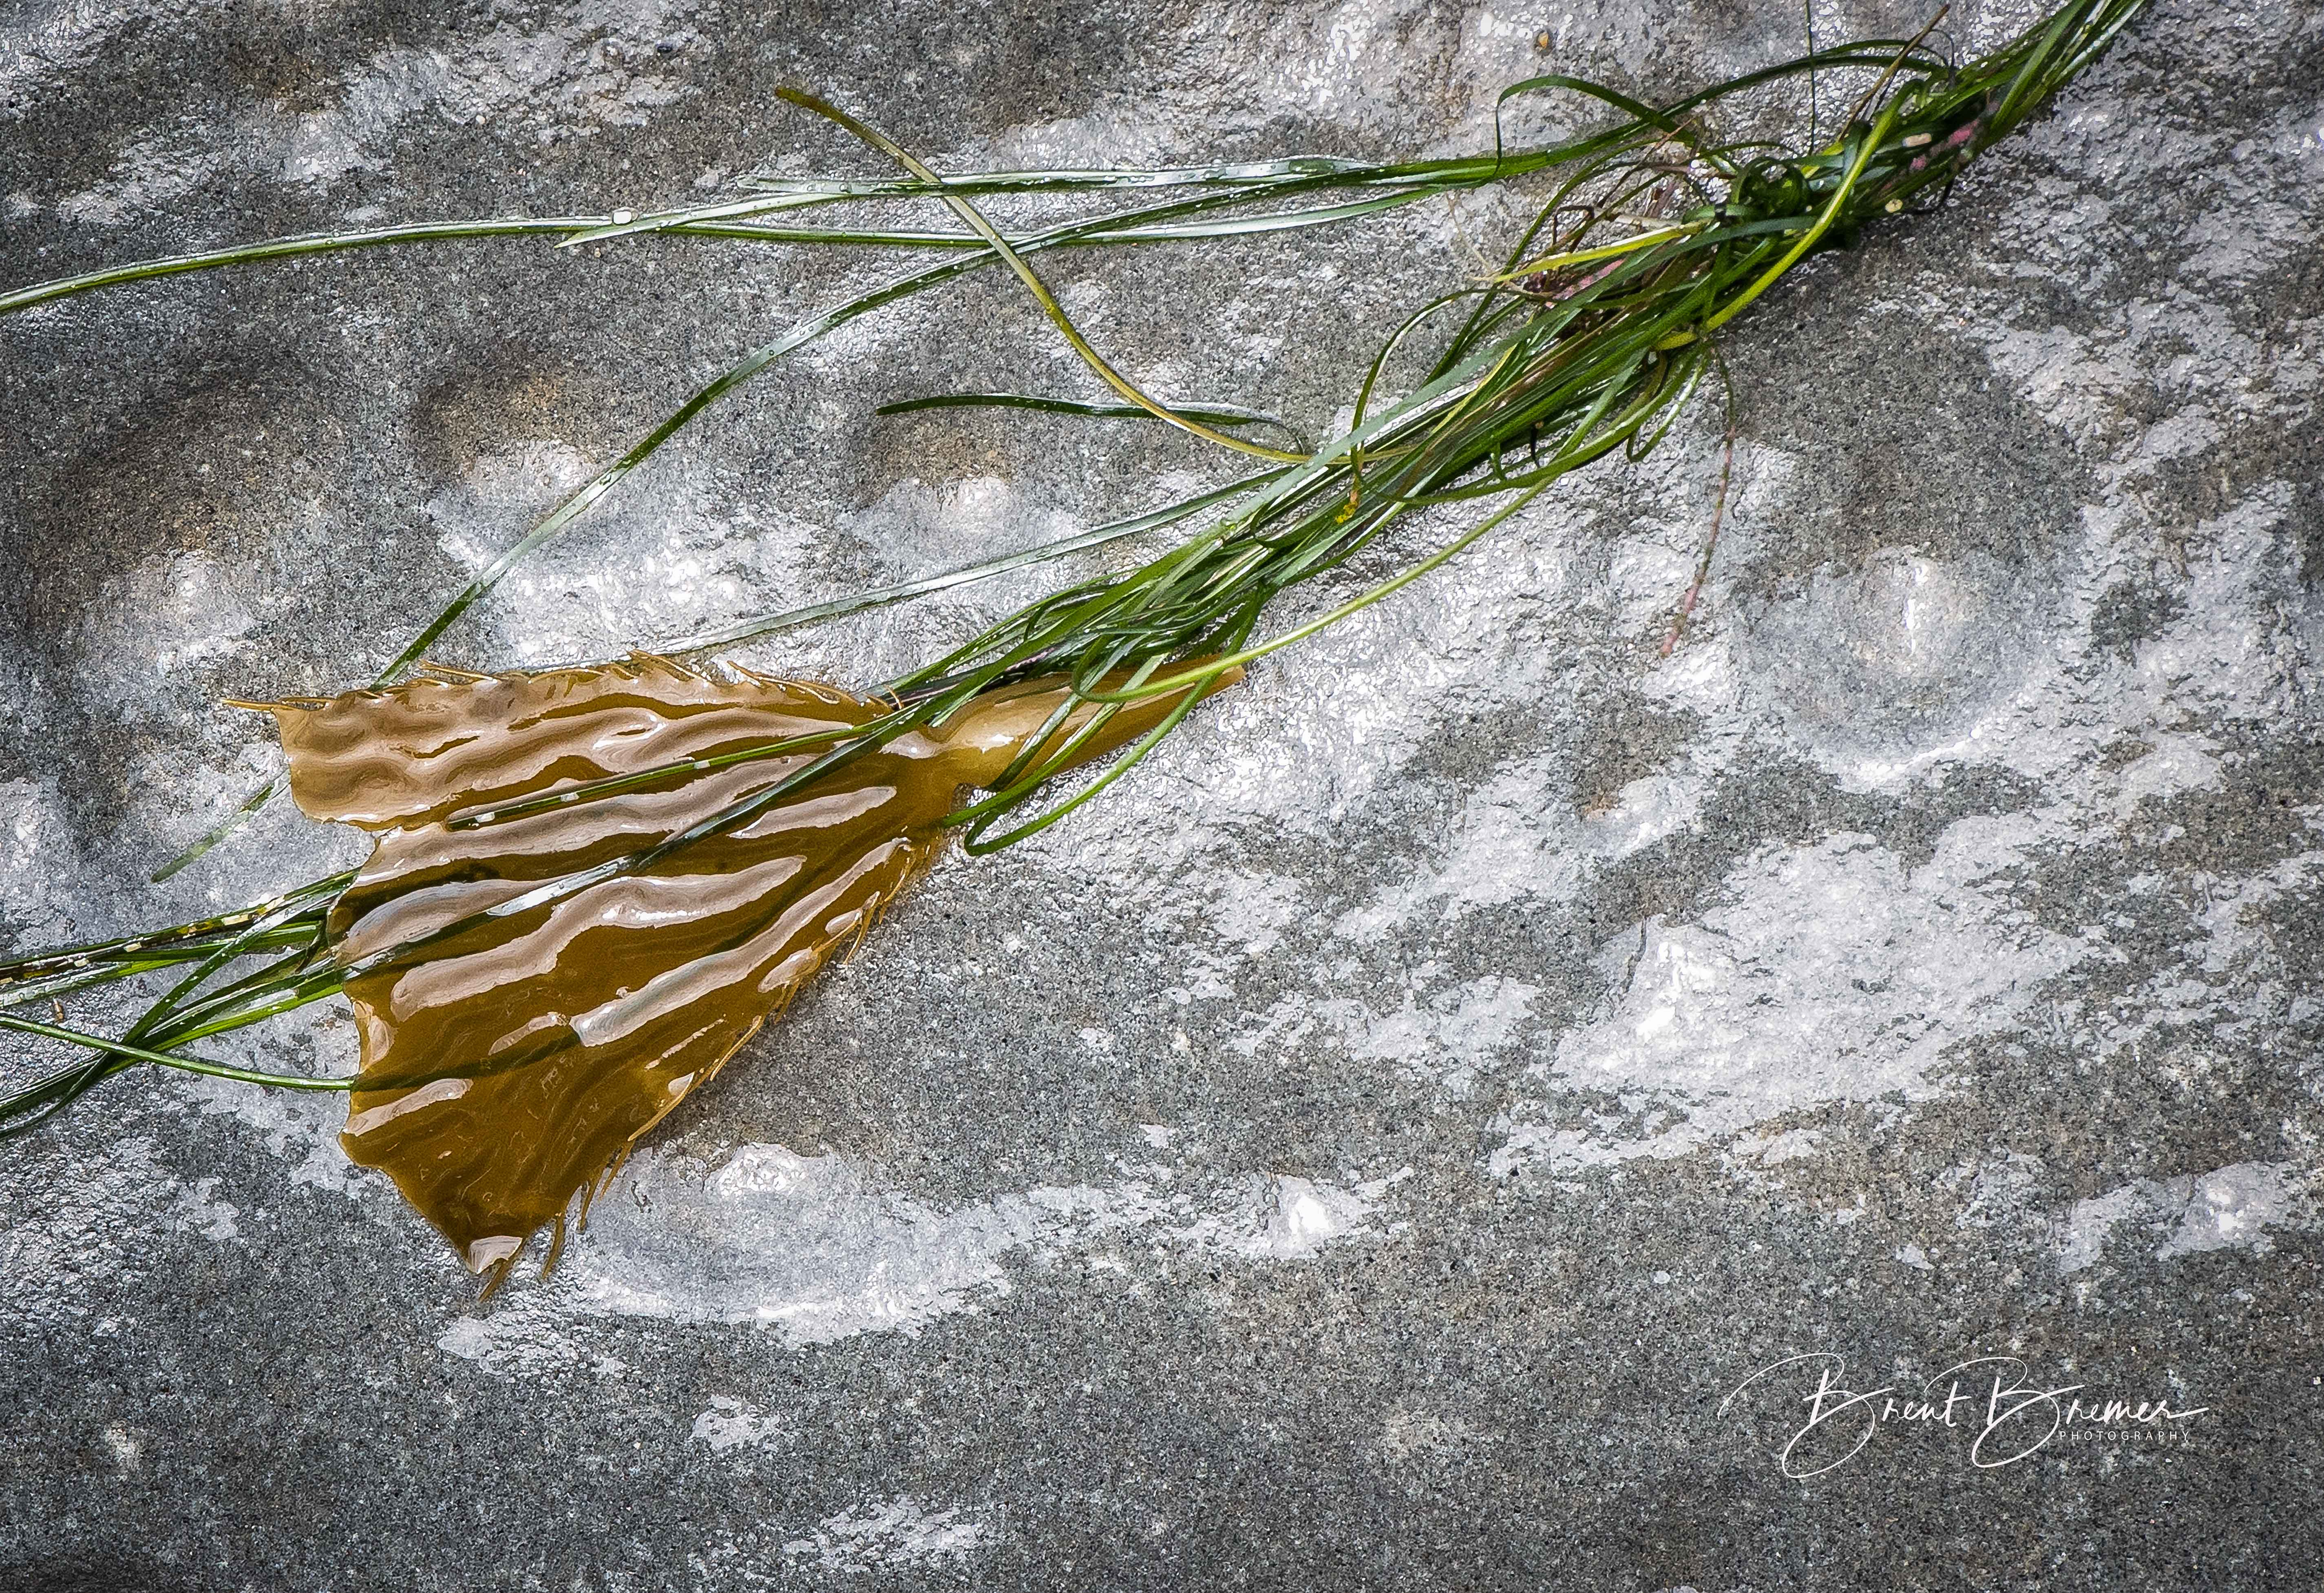 Seaweed Dsplayed on Rock